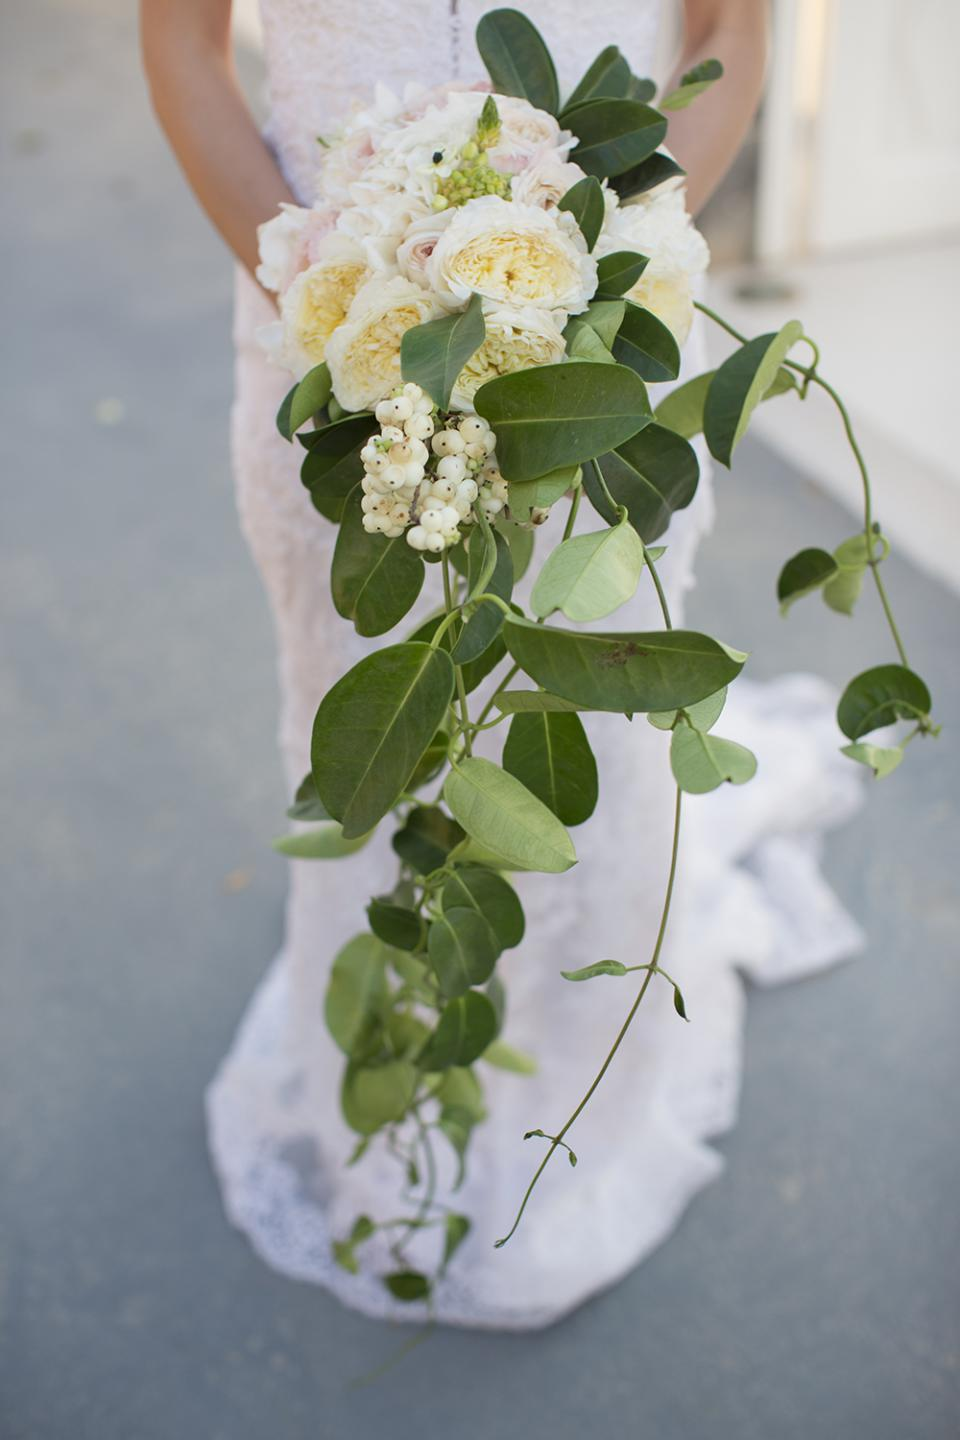 Greenery bouquet with white garden roses